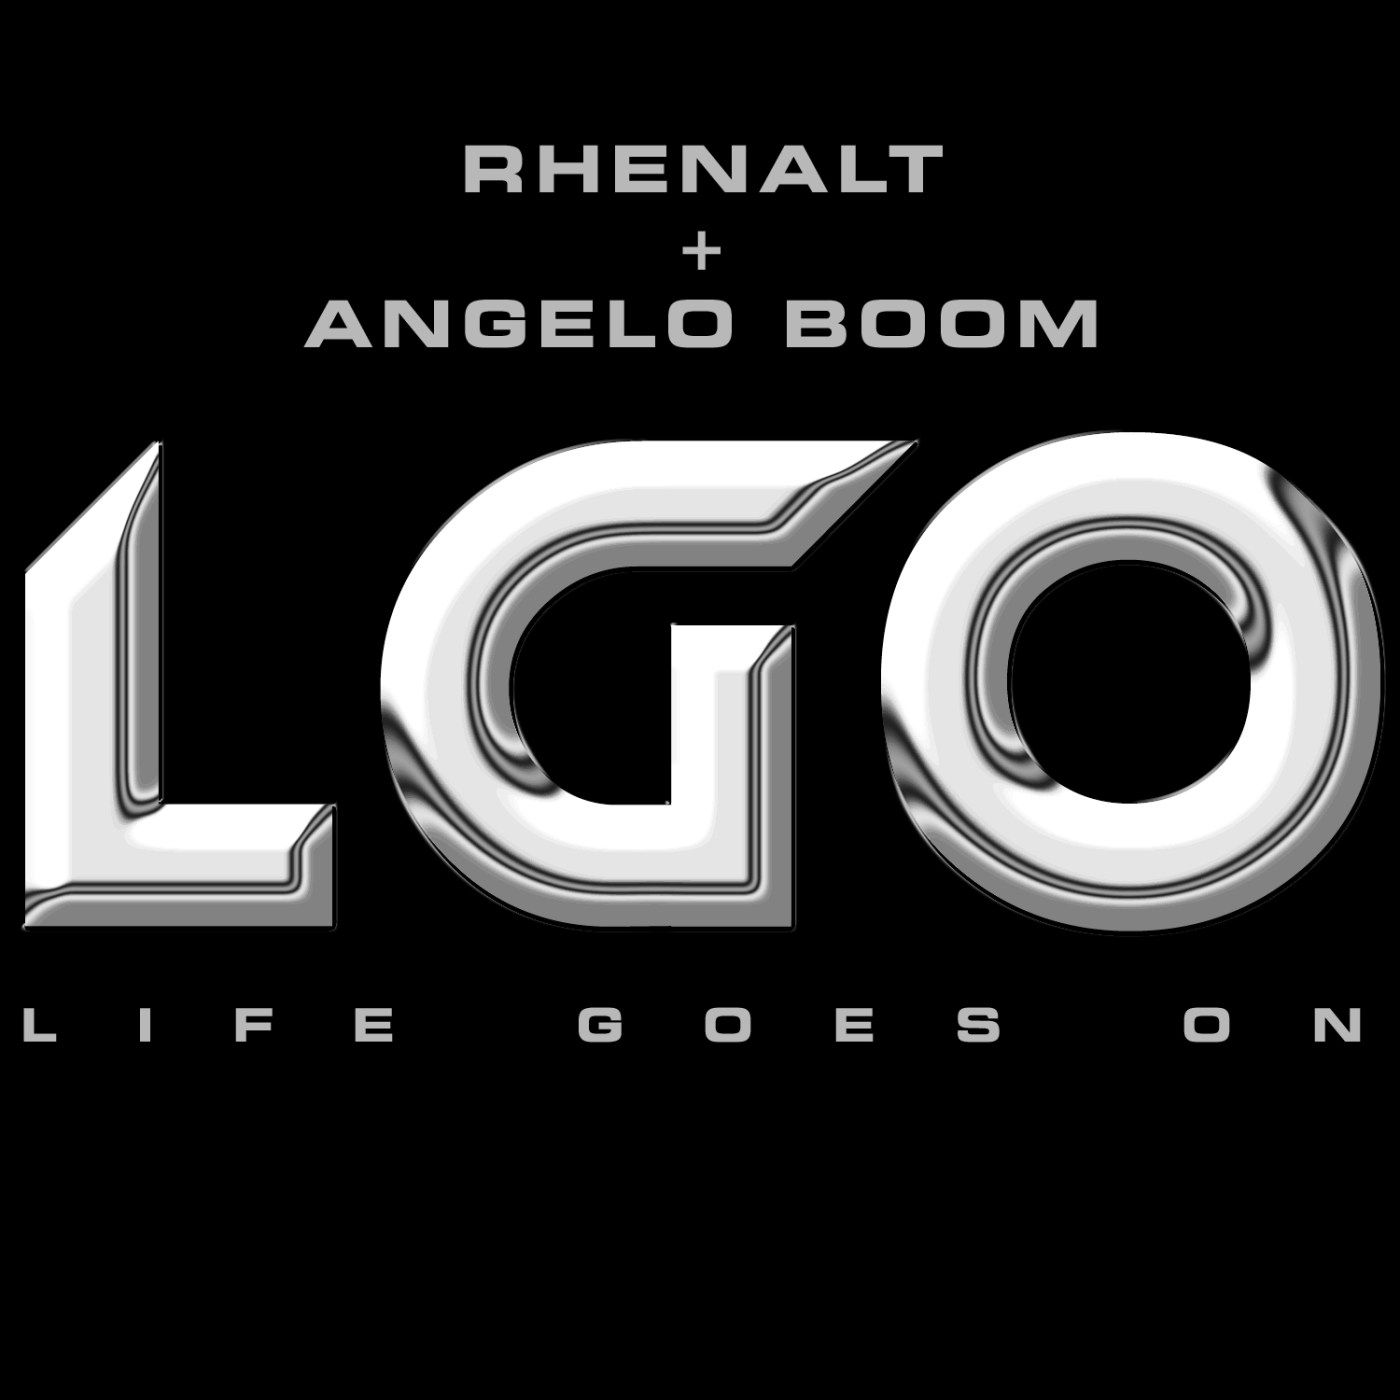 lgo by rhenalt angelo